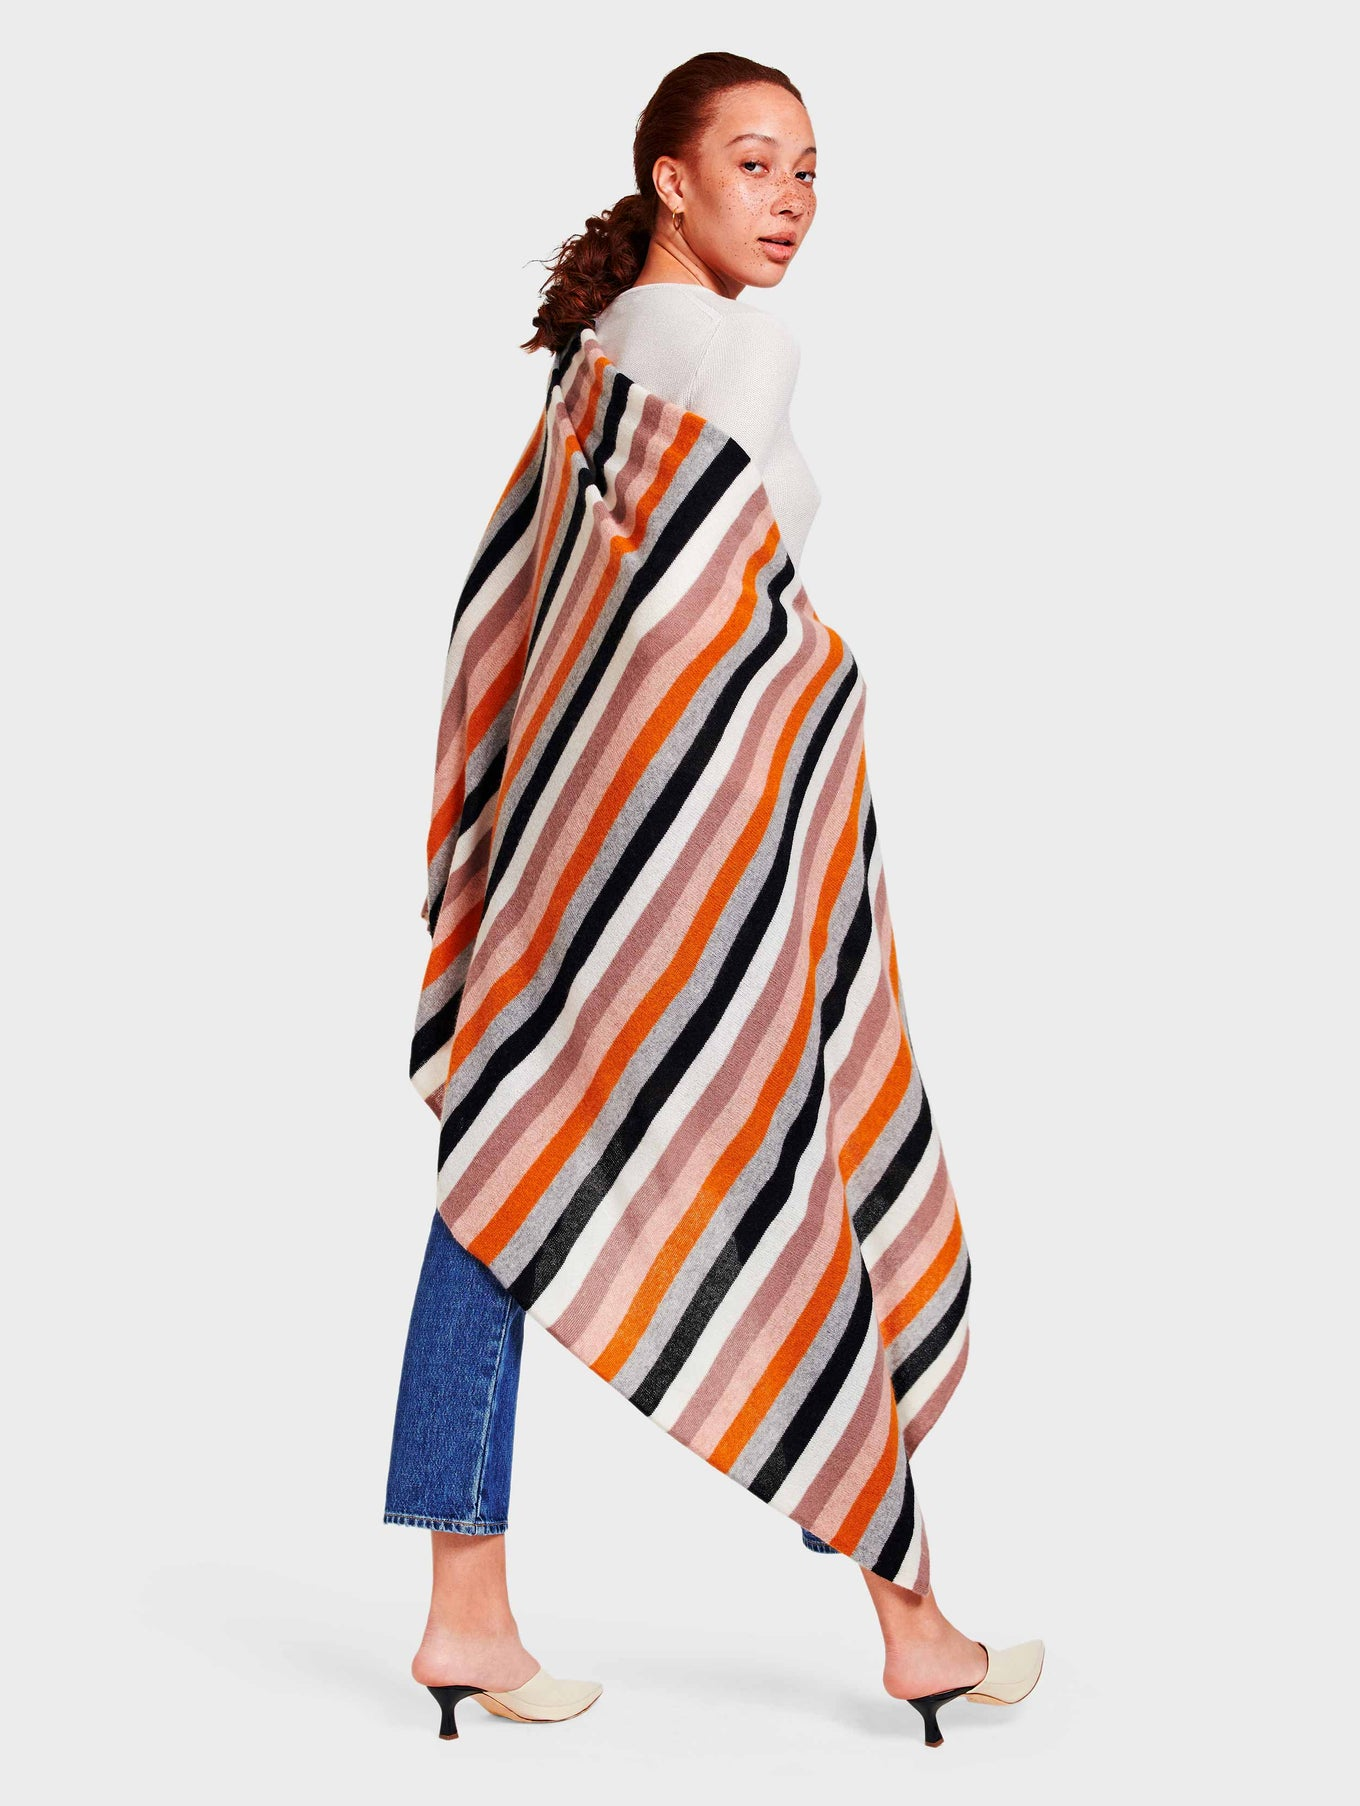 Cashmere Multi Color Stripe Travel Wrap - Black Multi - Image 1